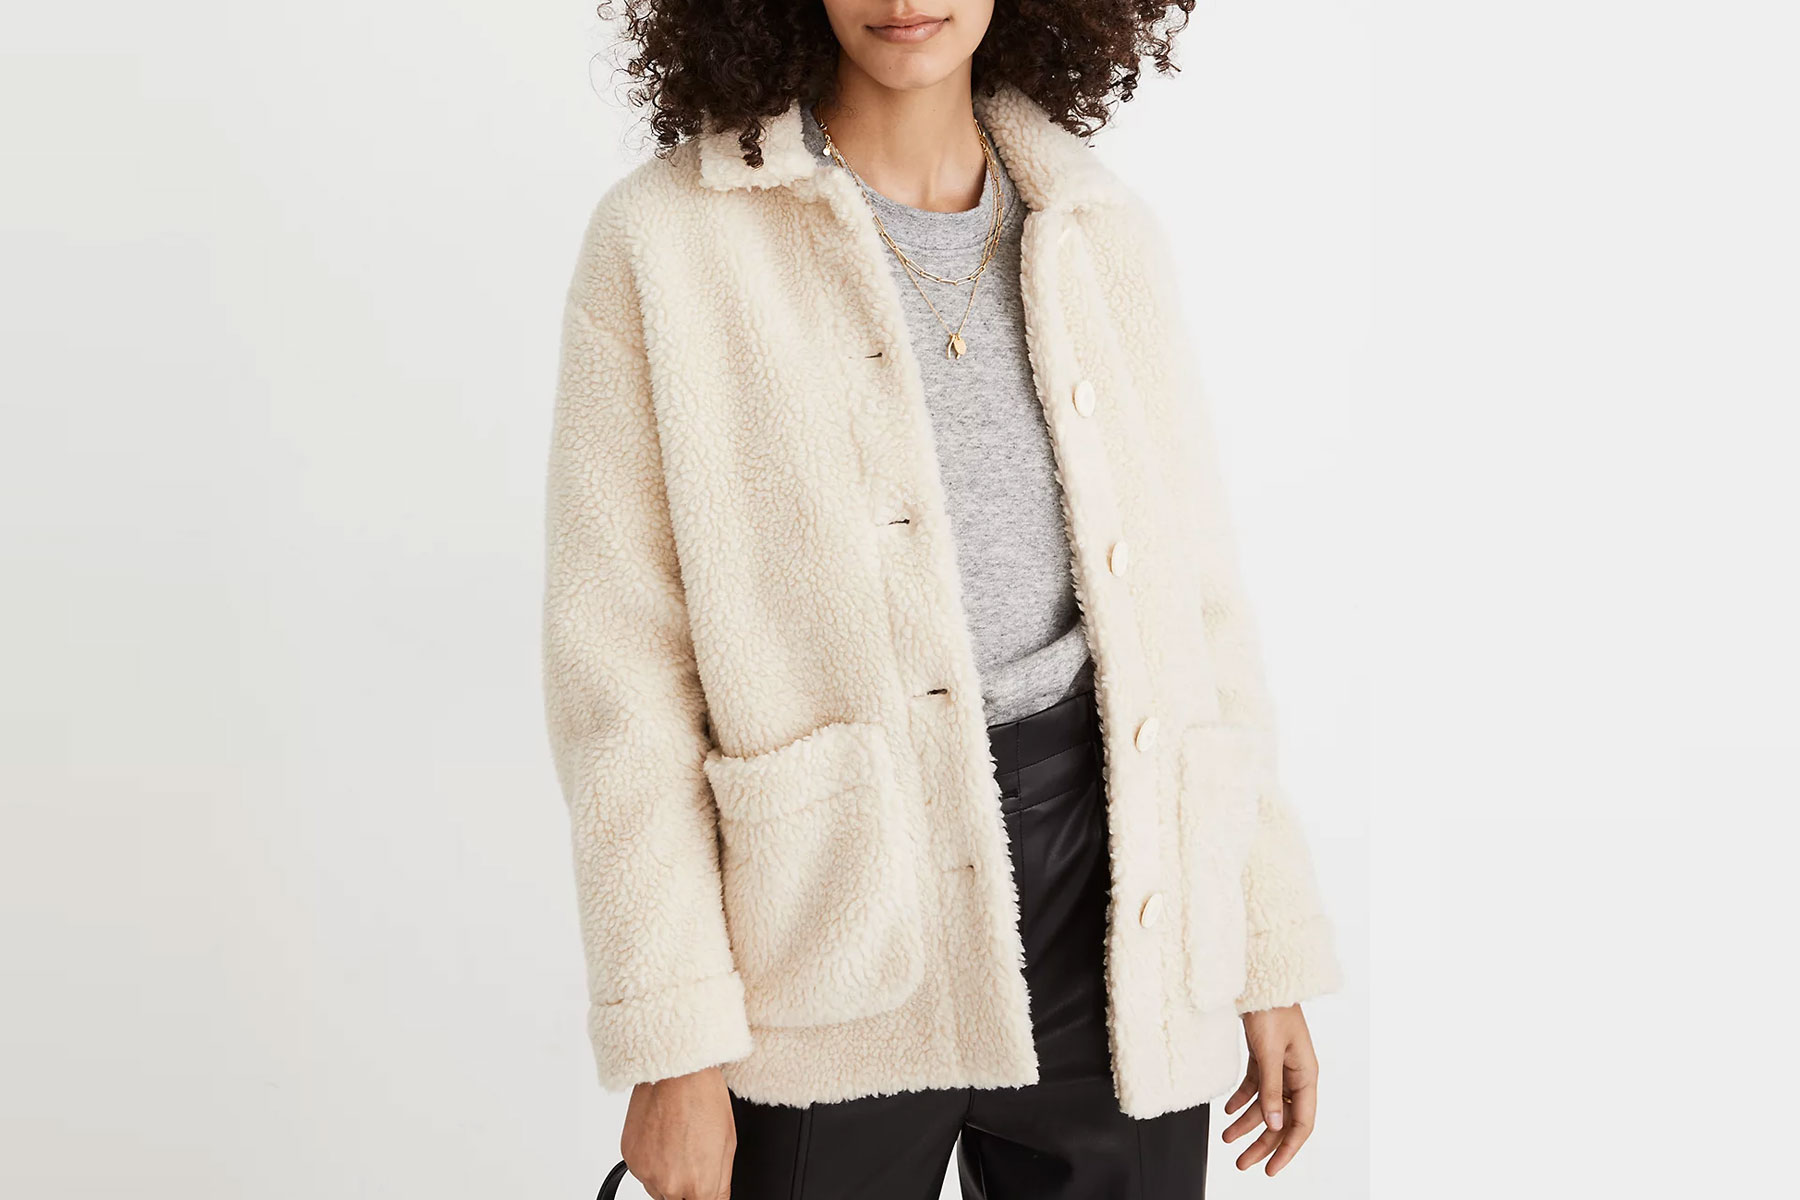 Cream colored sherpa collared jacket